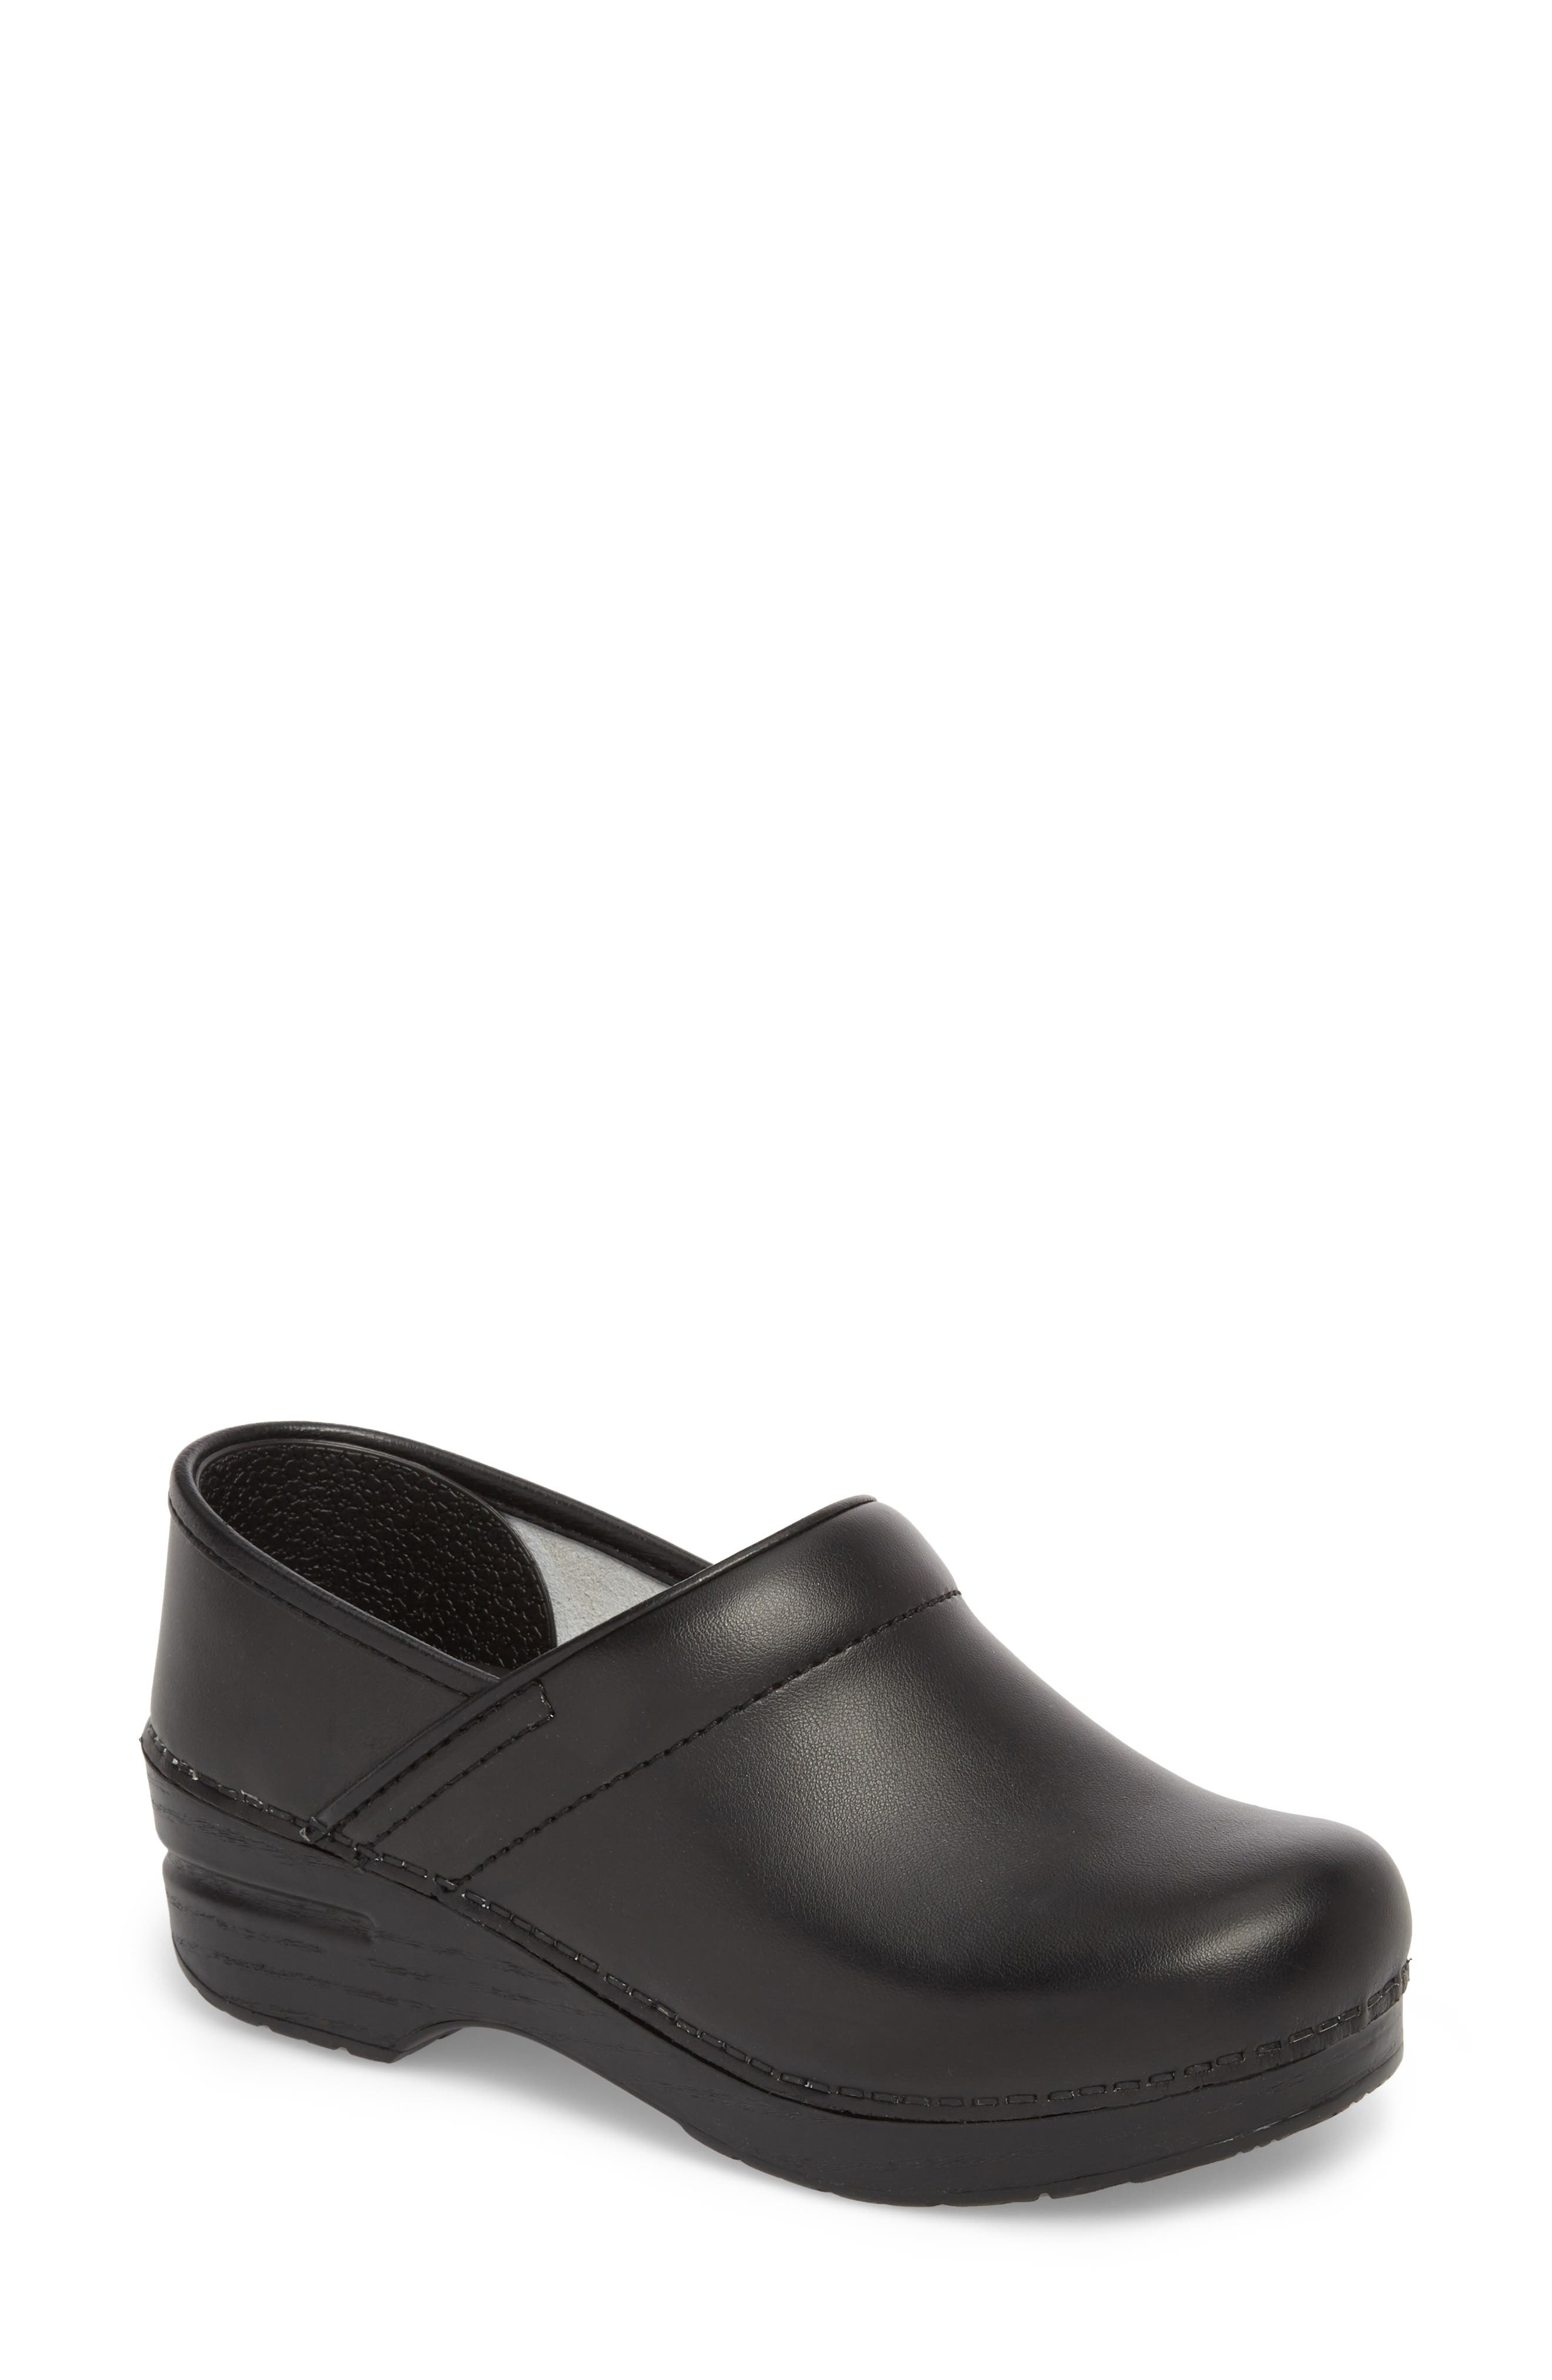 'Professional' Clog,                         Main,                         color, BLACK LEATHER